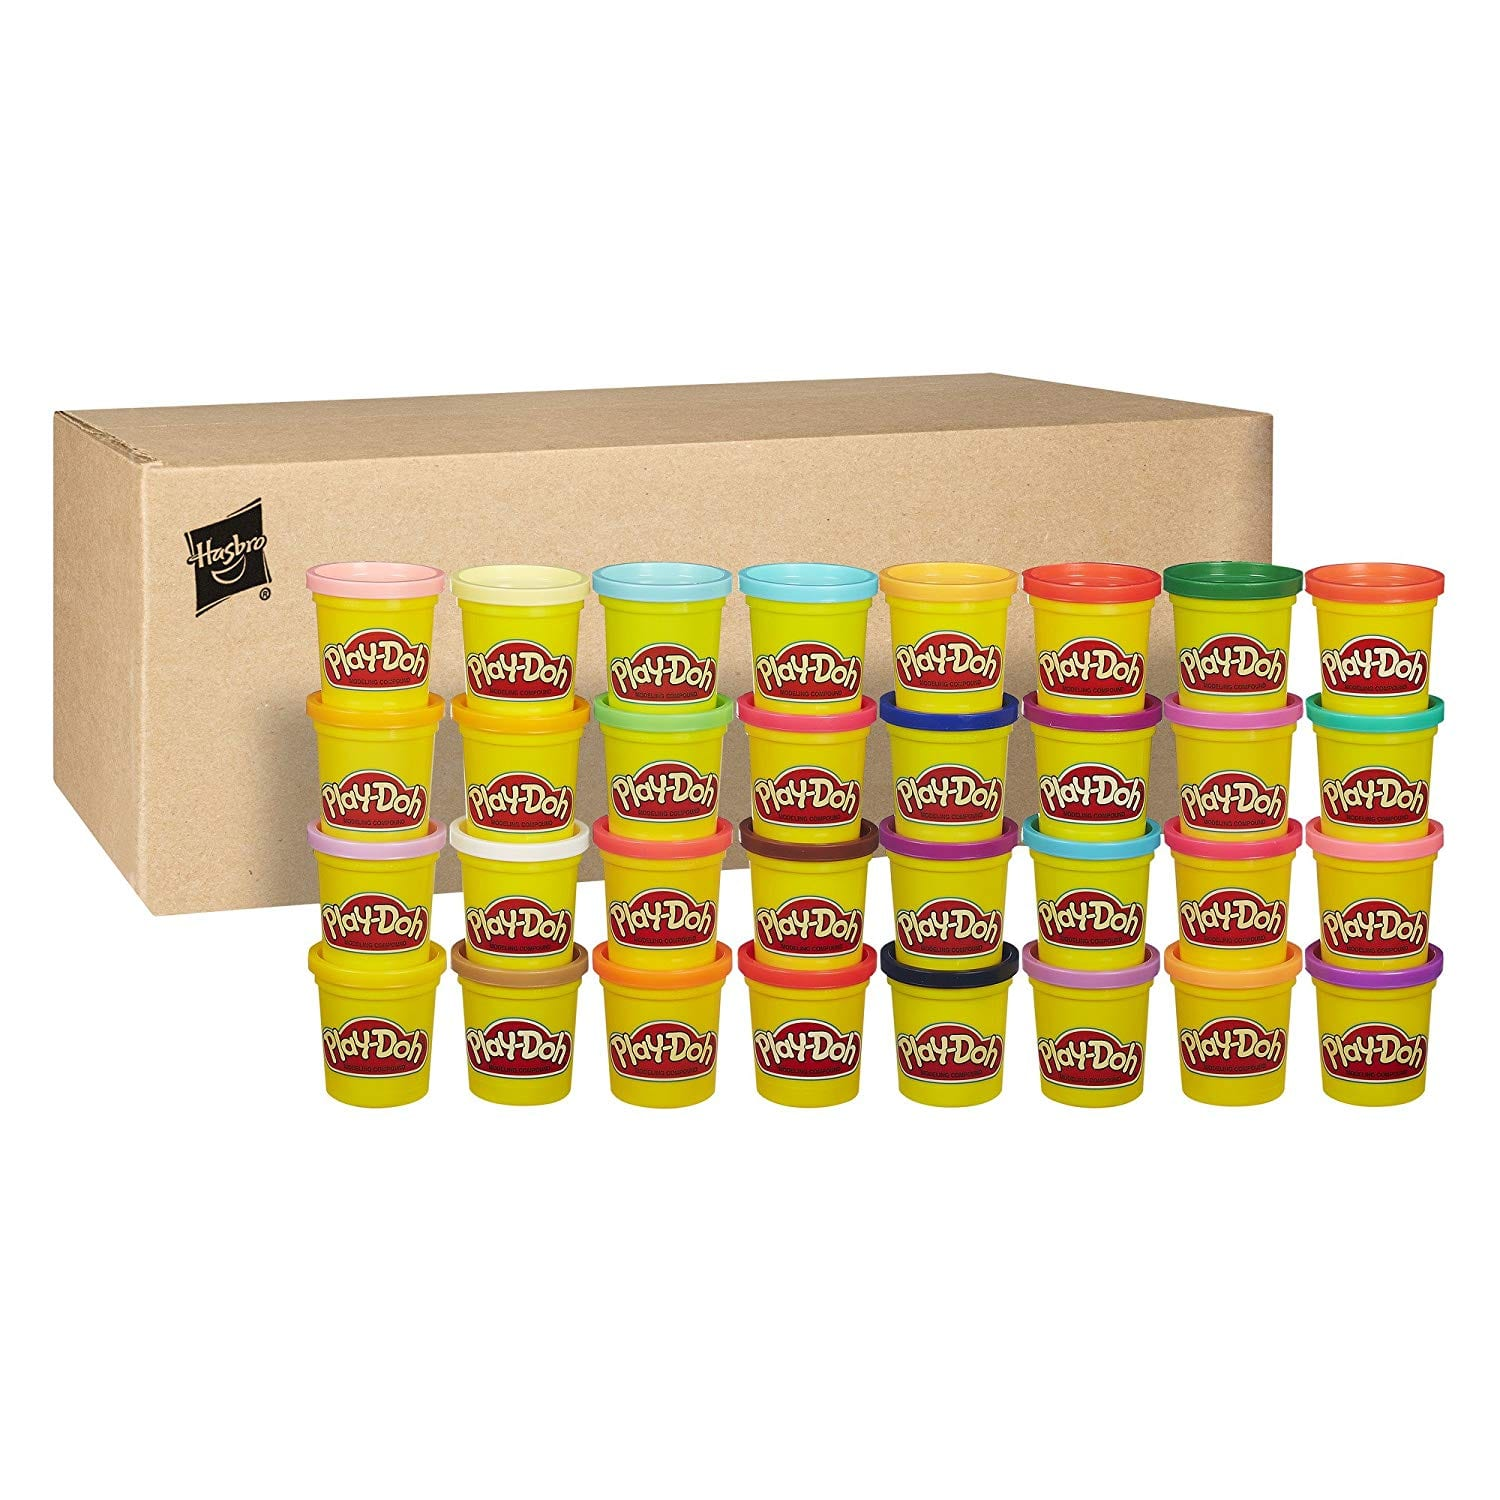 Play-Doh Modeling Compound 36-Pack Case of Colors, Non-Toxic, Assorted Colors, 3-Ounce Cans (Amazon Exclusive) $14.99